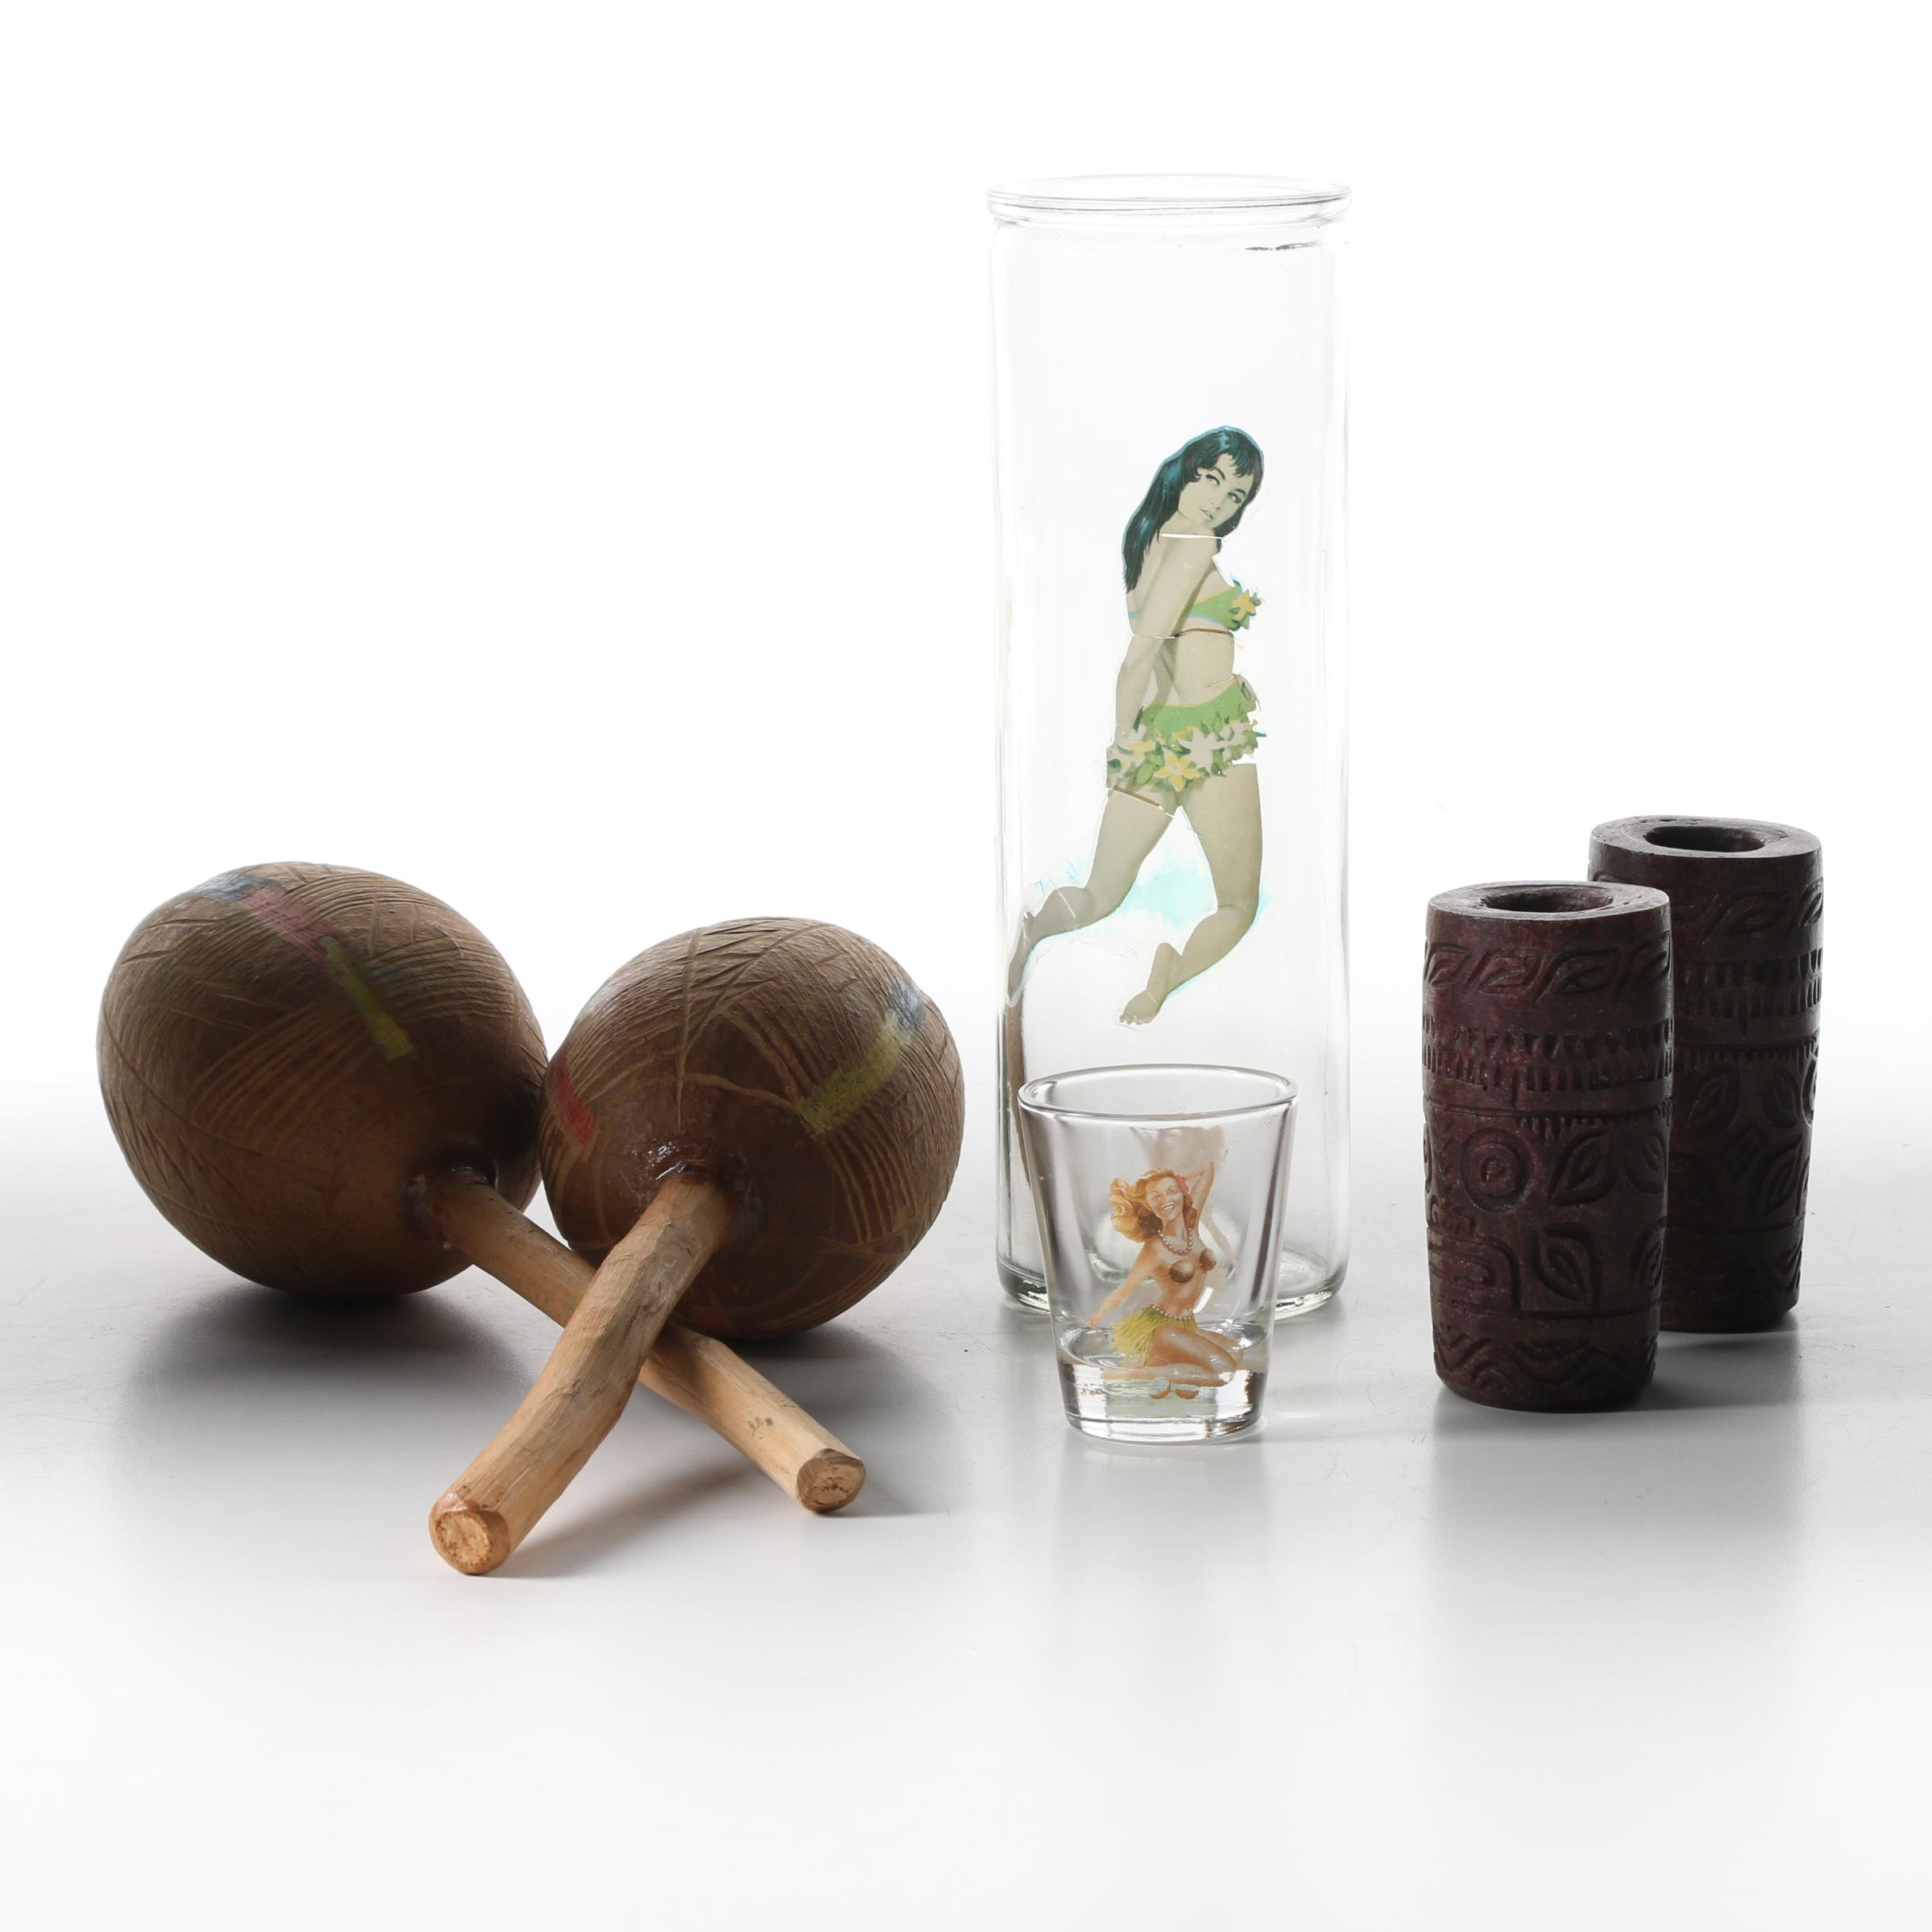 Hula and Pinup Girl Glasses and Other Collectibles